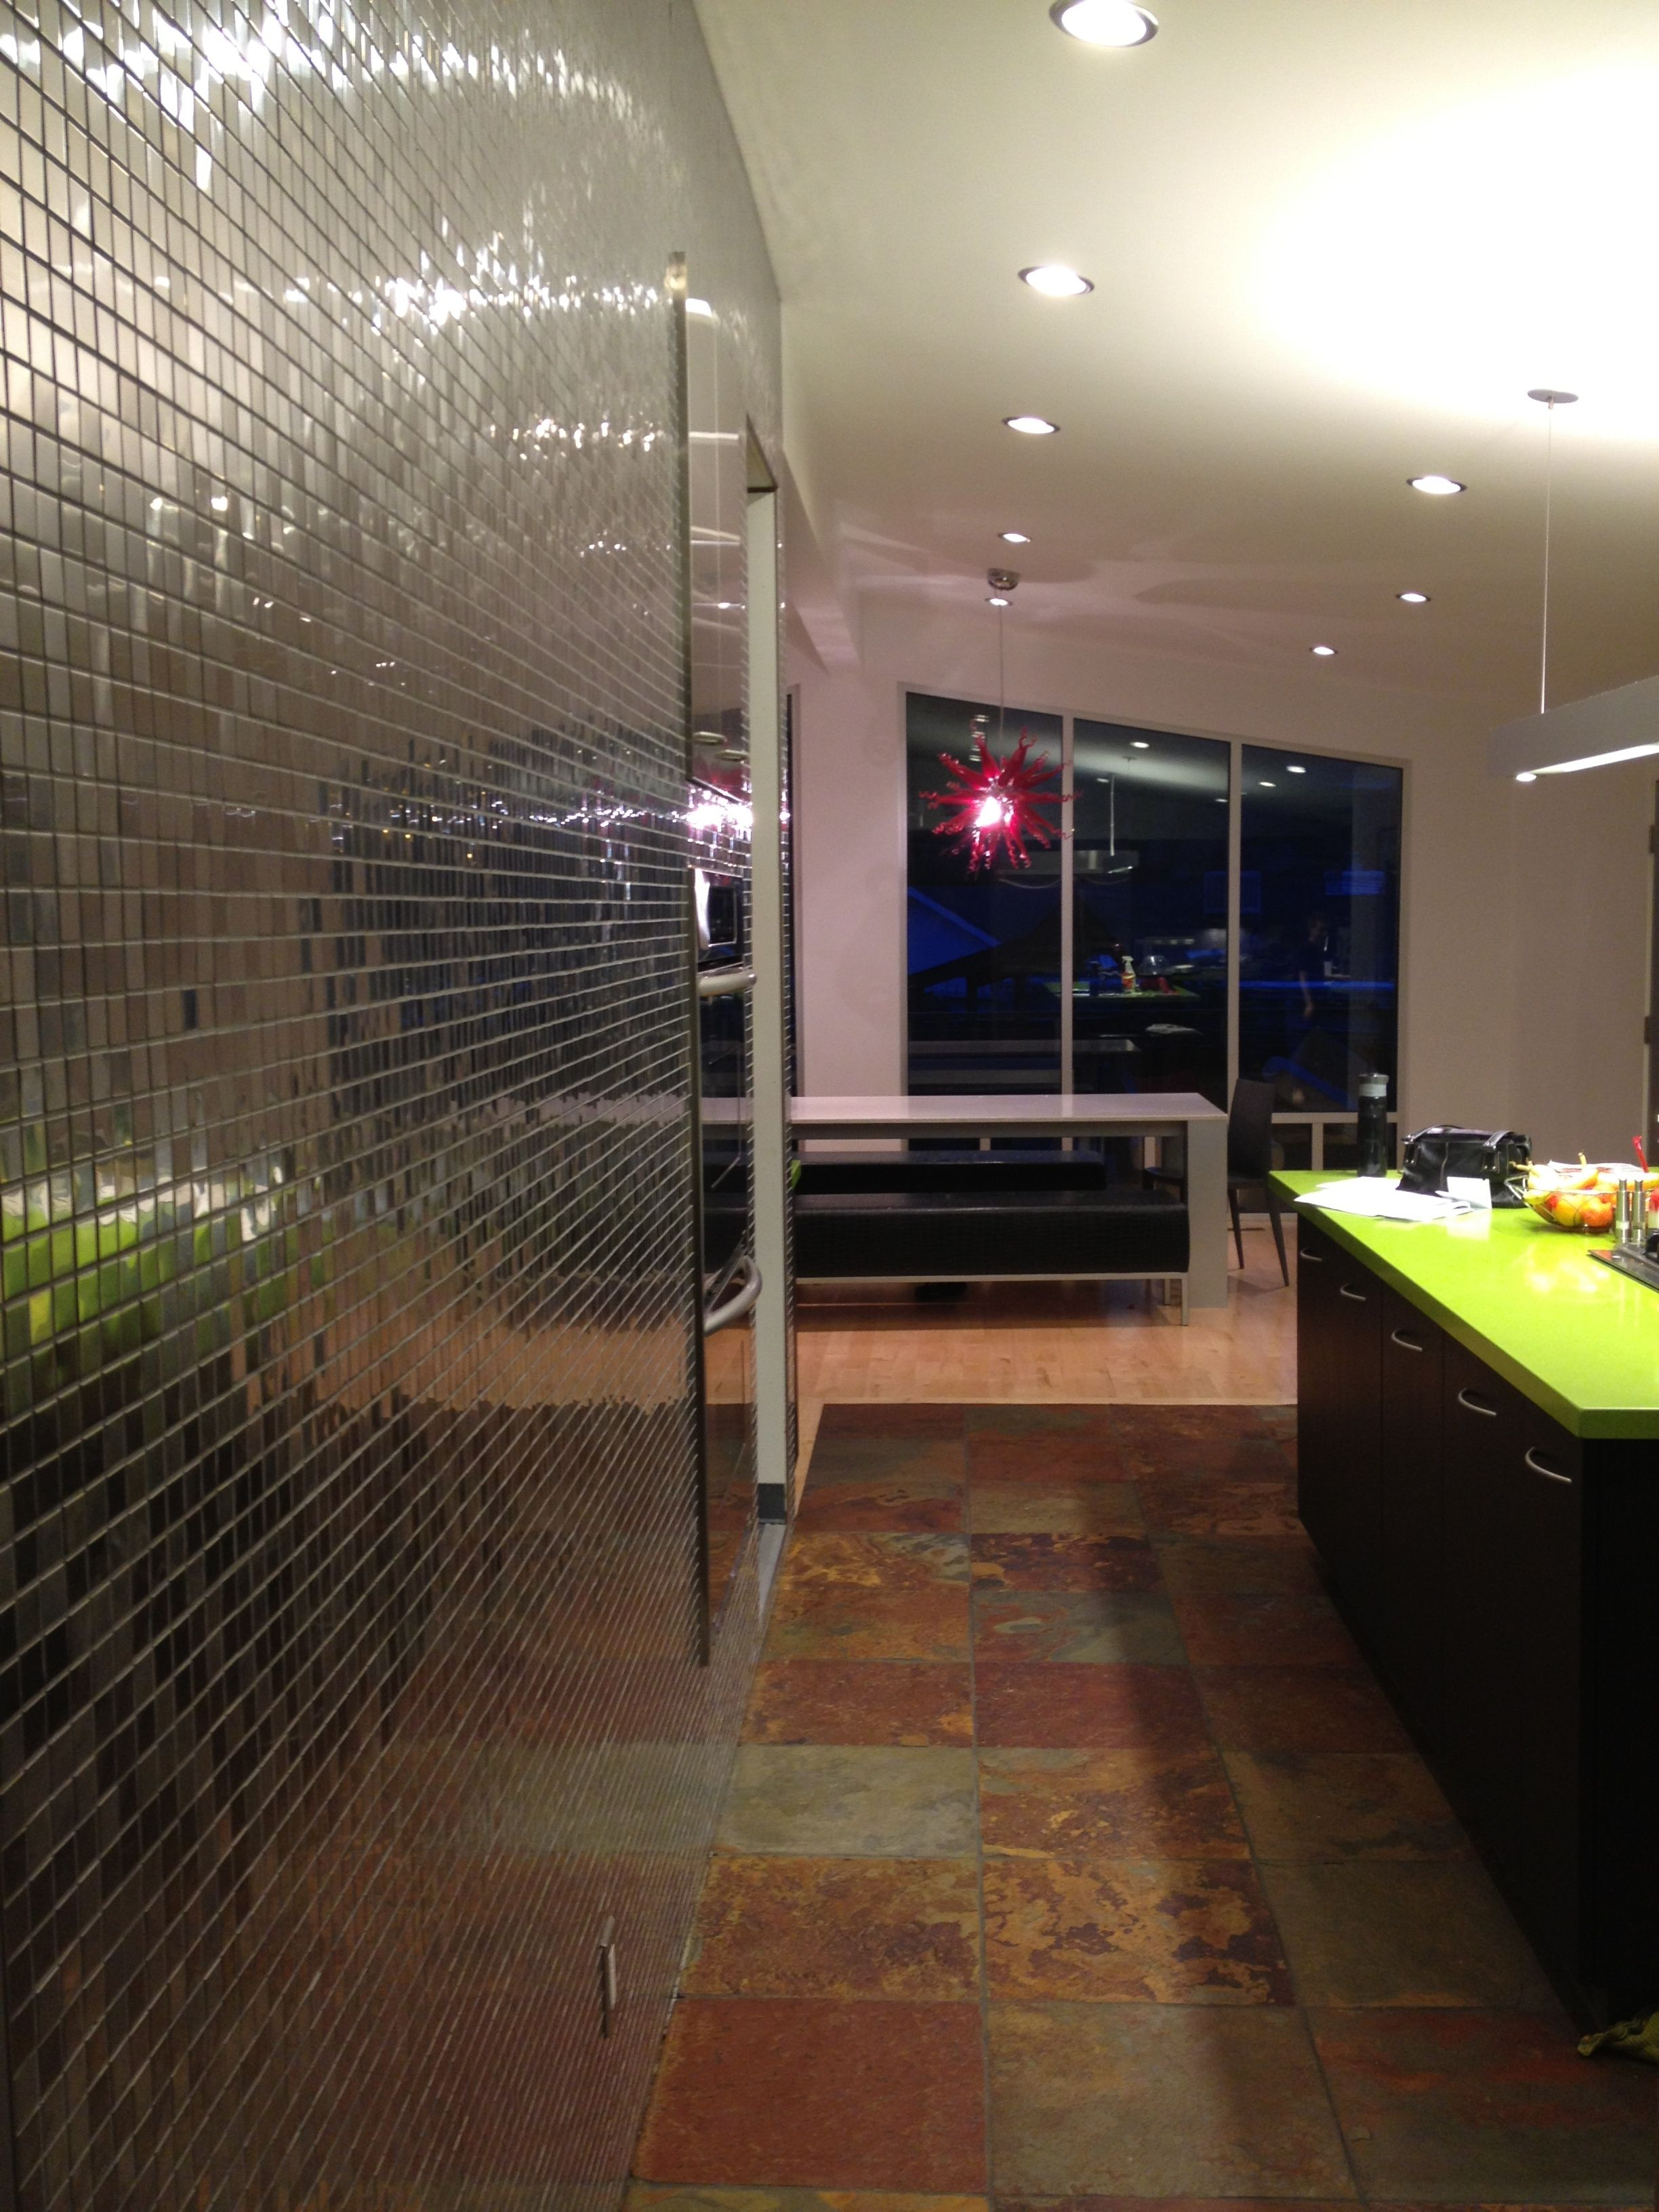 Stainless Steel Mosaic Tile X Pinterest Wall Accents - 1x1 mirror tiles